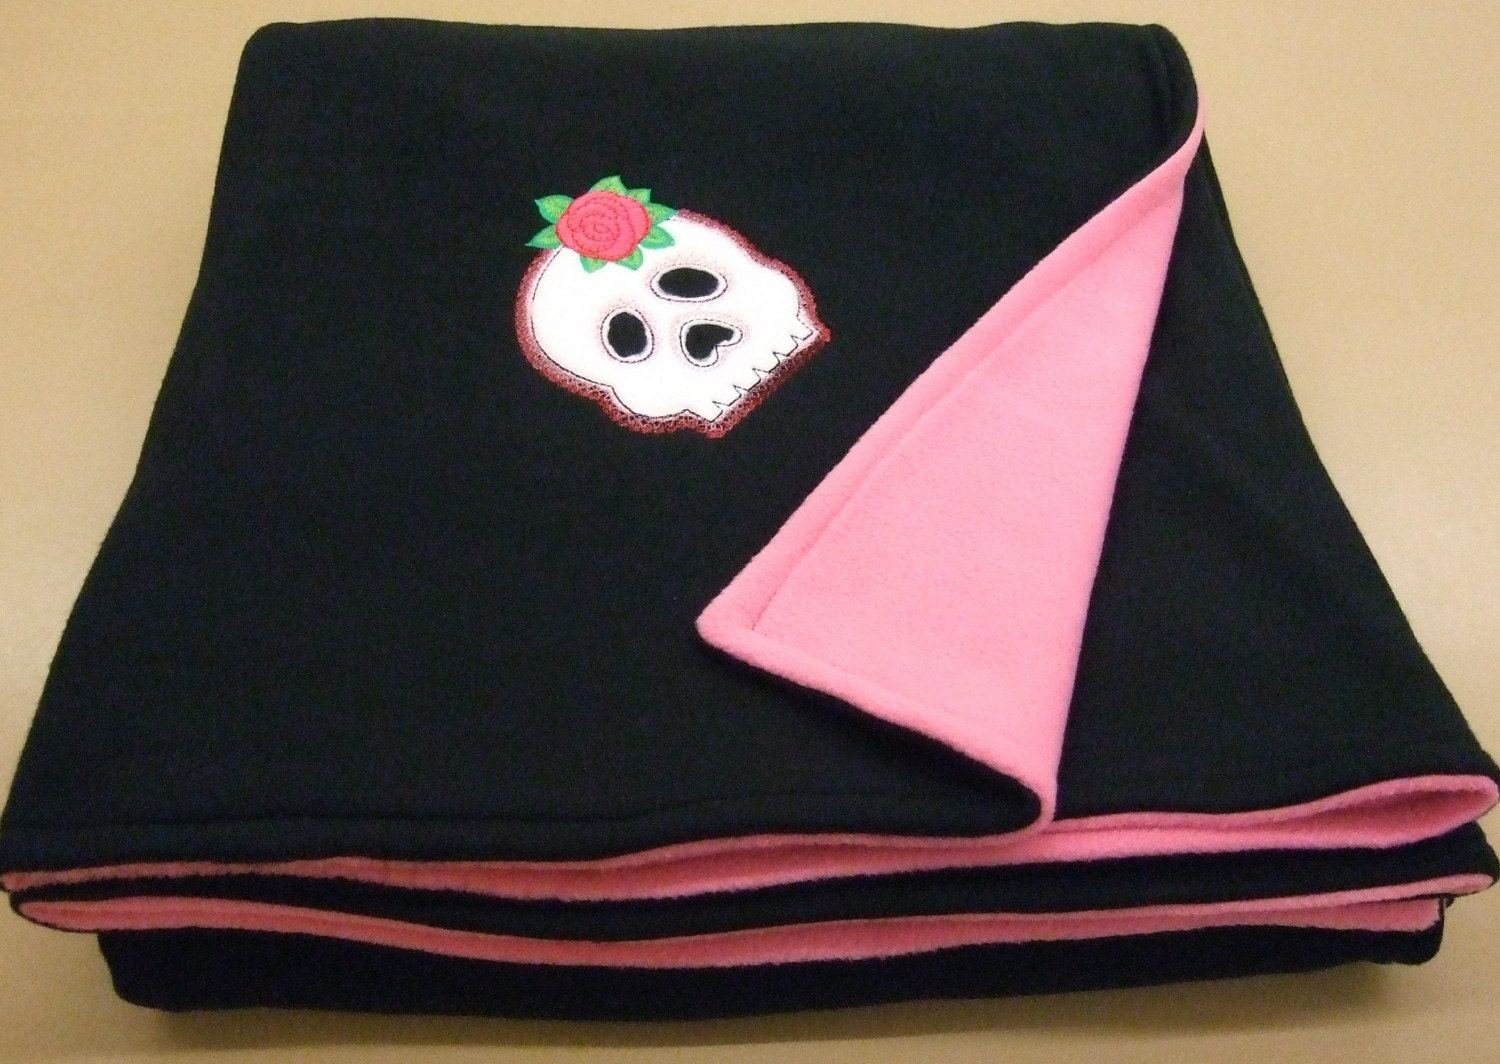 Pink and blackfleece blanket with skull applique embroidery